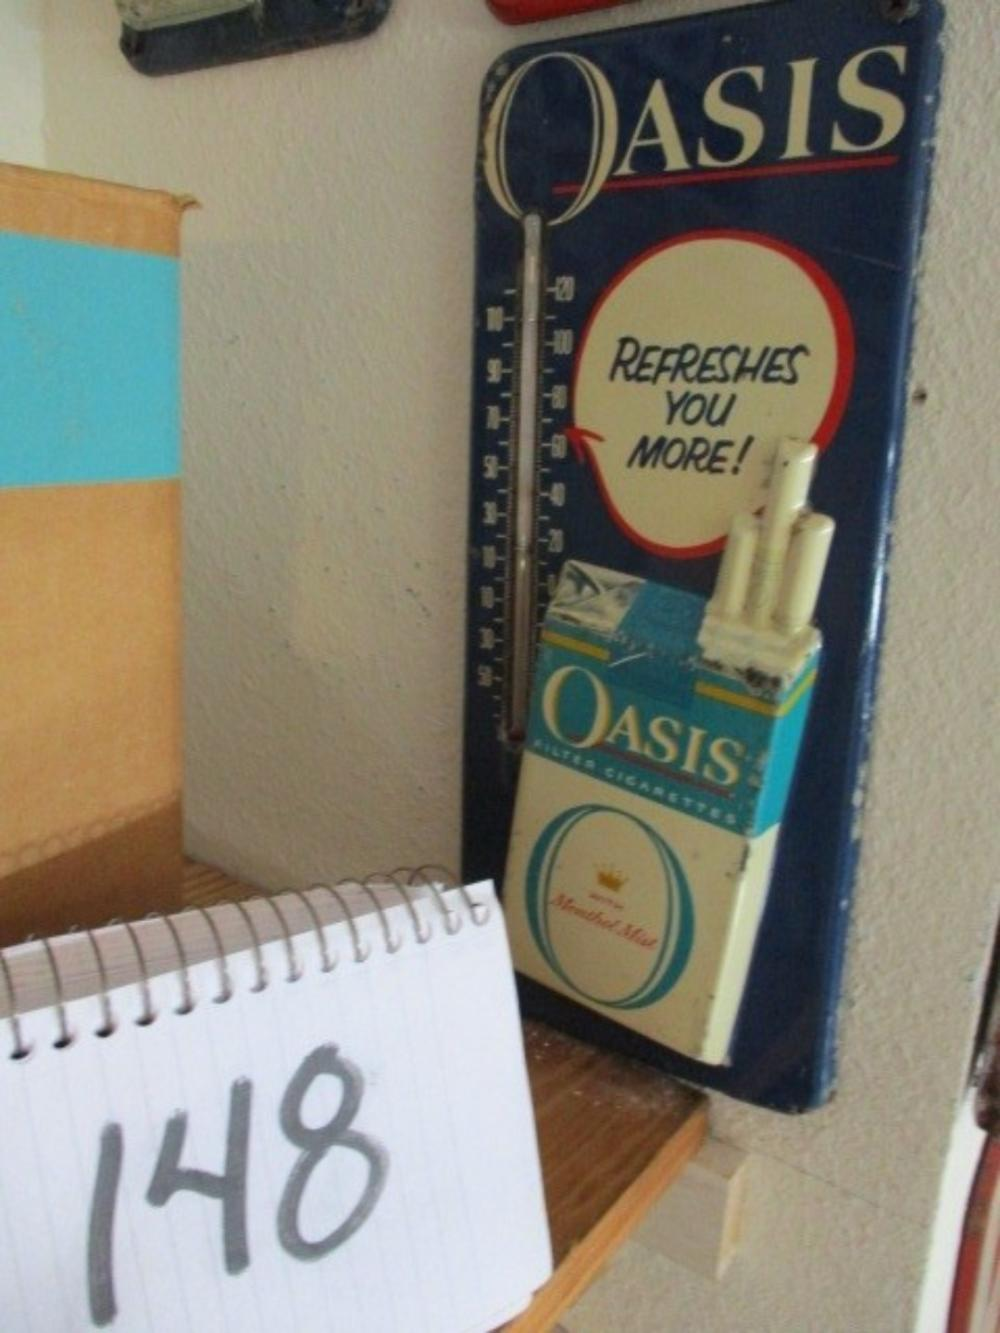 "Oasis Cigarette Thermometer Refreshes You More Embossed Cigarette Box 13""x6"""